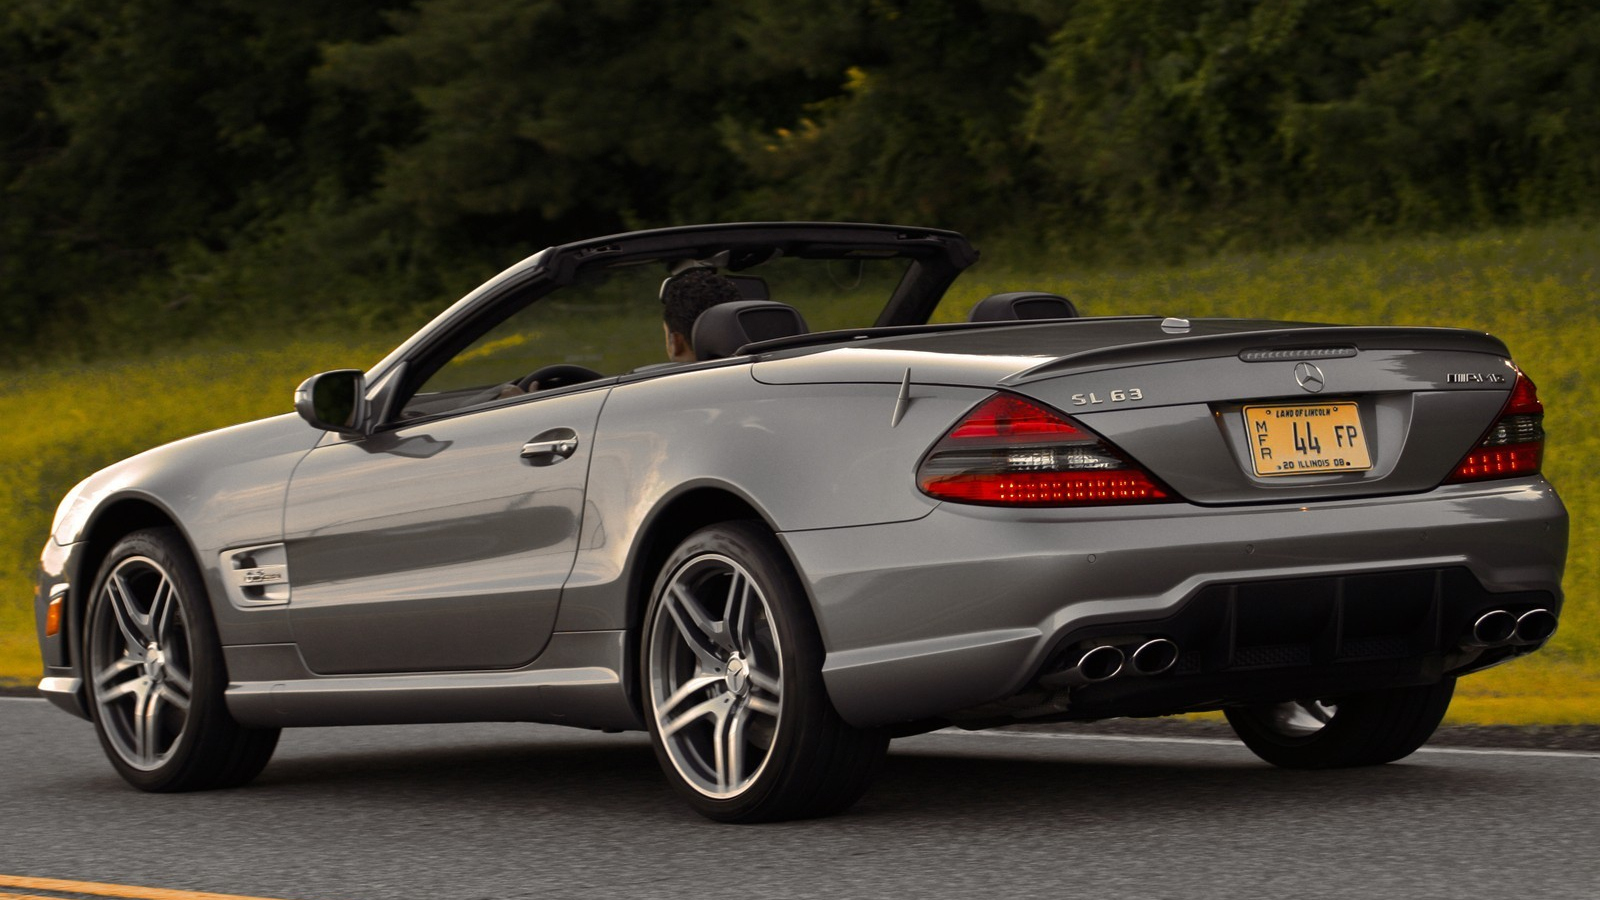 Free Download 2009 Mercedes Benz Sl63 Amg Exotic Car Wallpaper 21 Images, Photos, Reviews